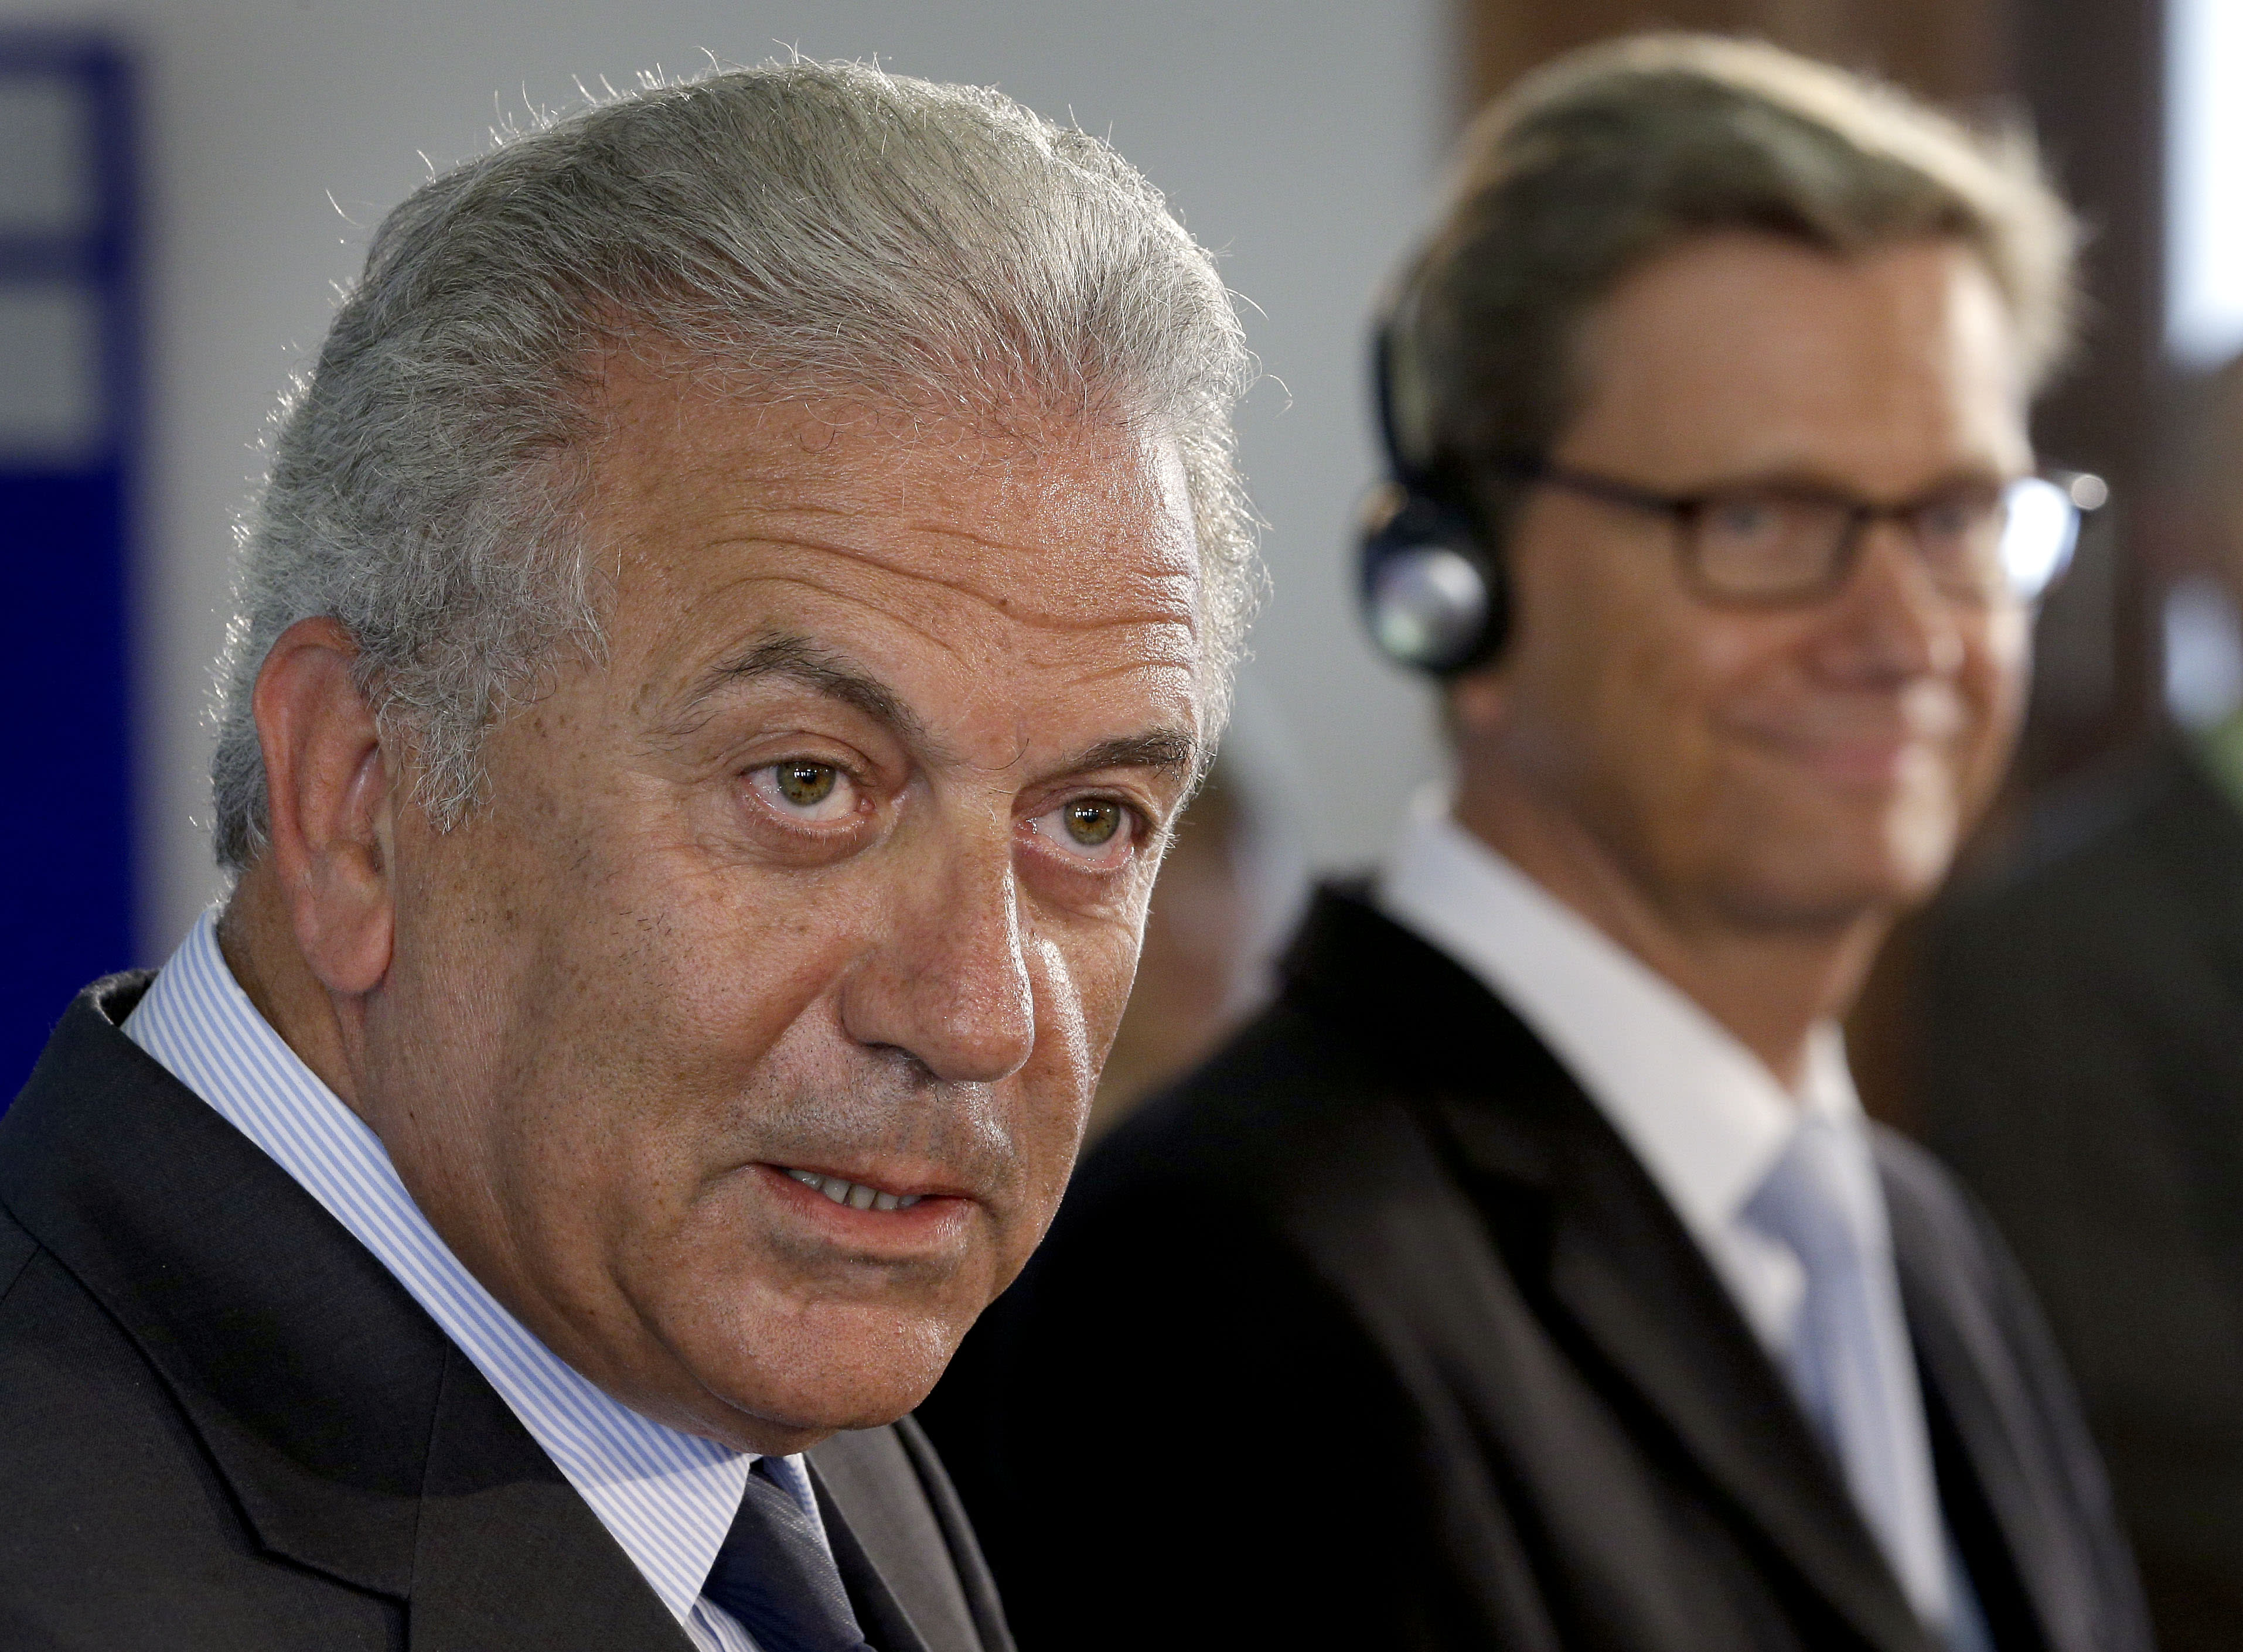 German Foreign Minister Guido Westerwelle right, and his counterpart from Greece, Dimitris Avramopoulos, left, address the media during a joint press conference after a meeting at the foreign office in Berlin, Germany, Monday, Aug. 20, 2012. (AP Photo/Michael Sohn)